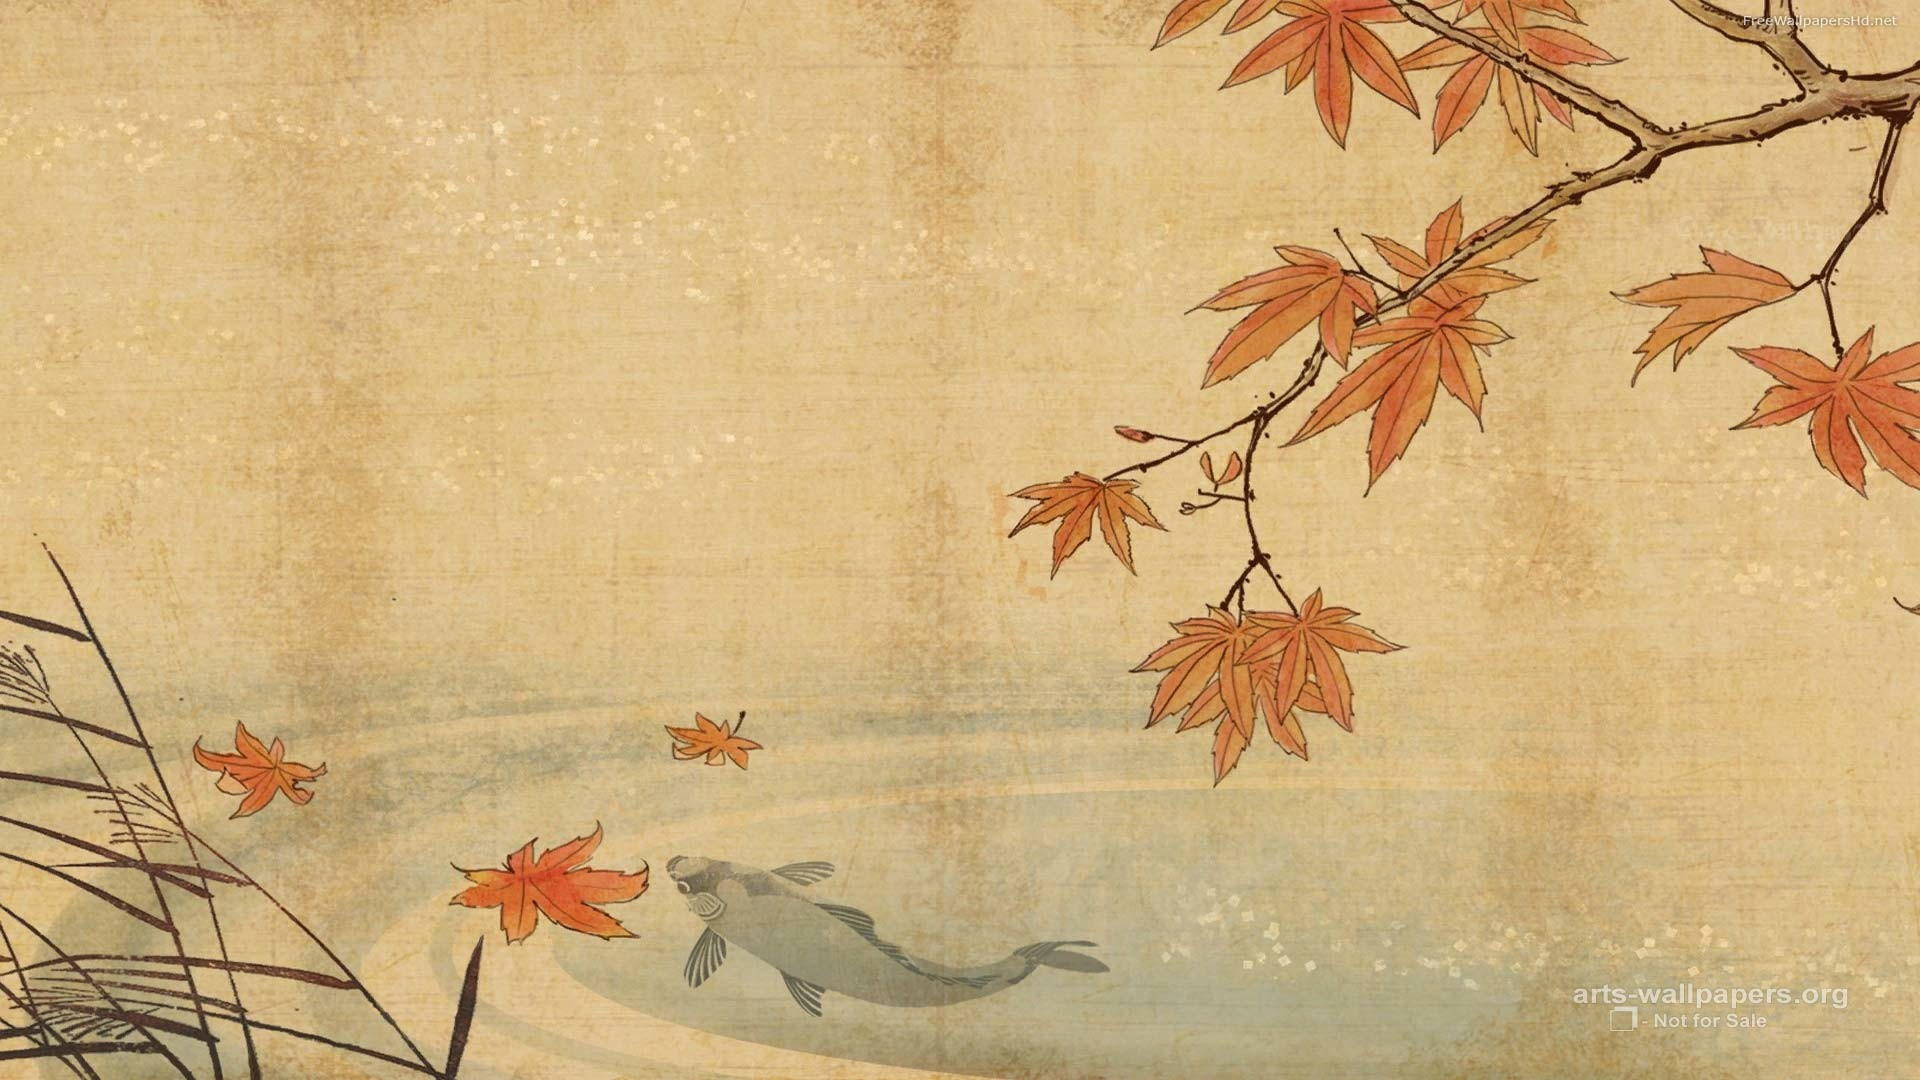 1920x1080 Chinese Painting Art Wallpapers, Paintings, Desktop Art Backgrounds